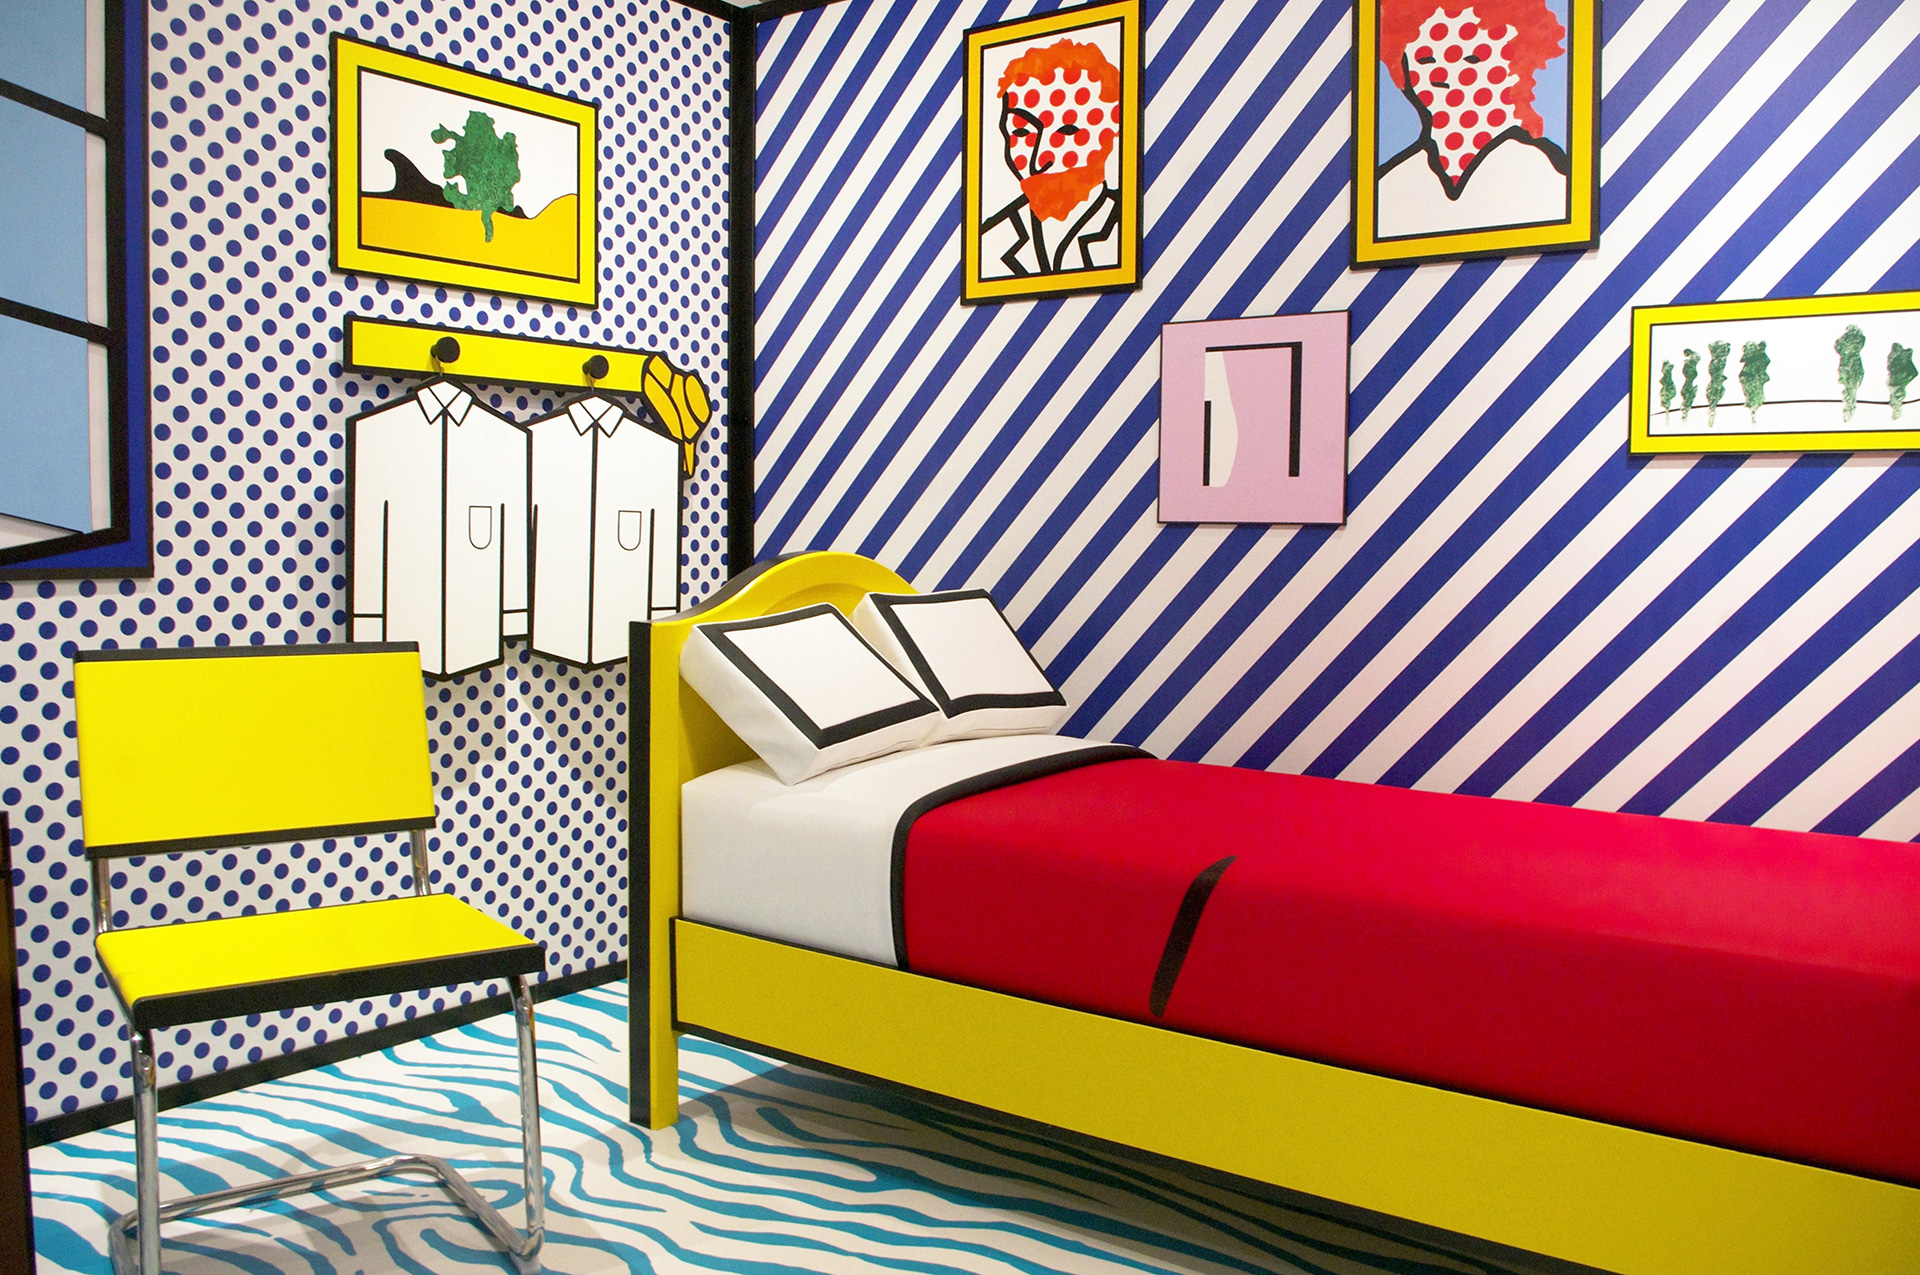 Roy Lichtenstein, lasting influence, room in arles